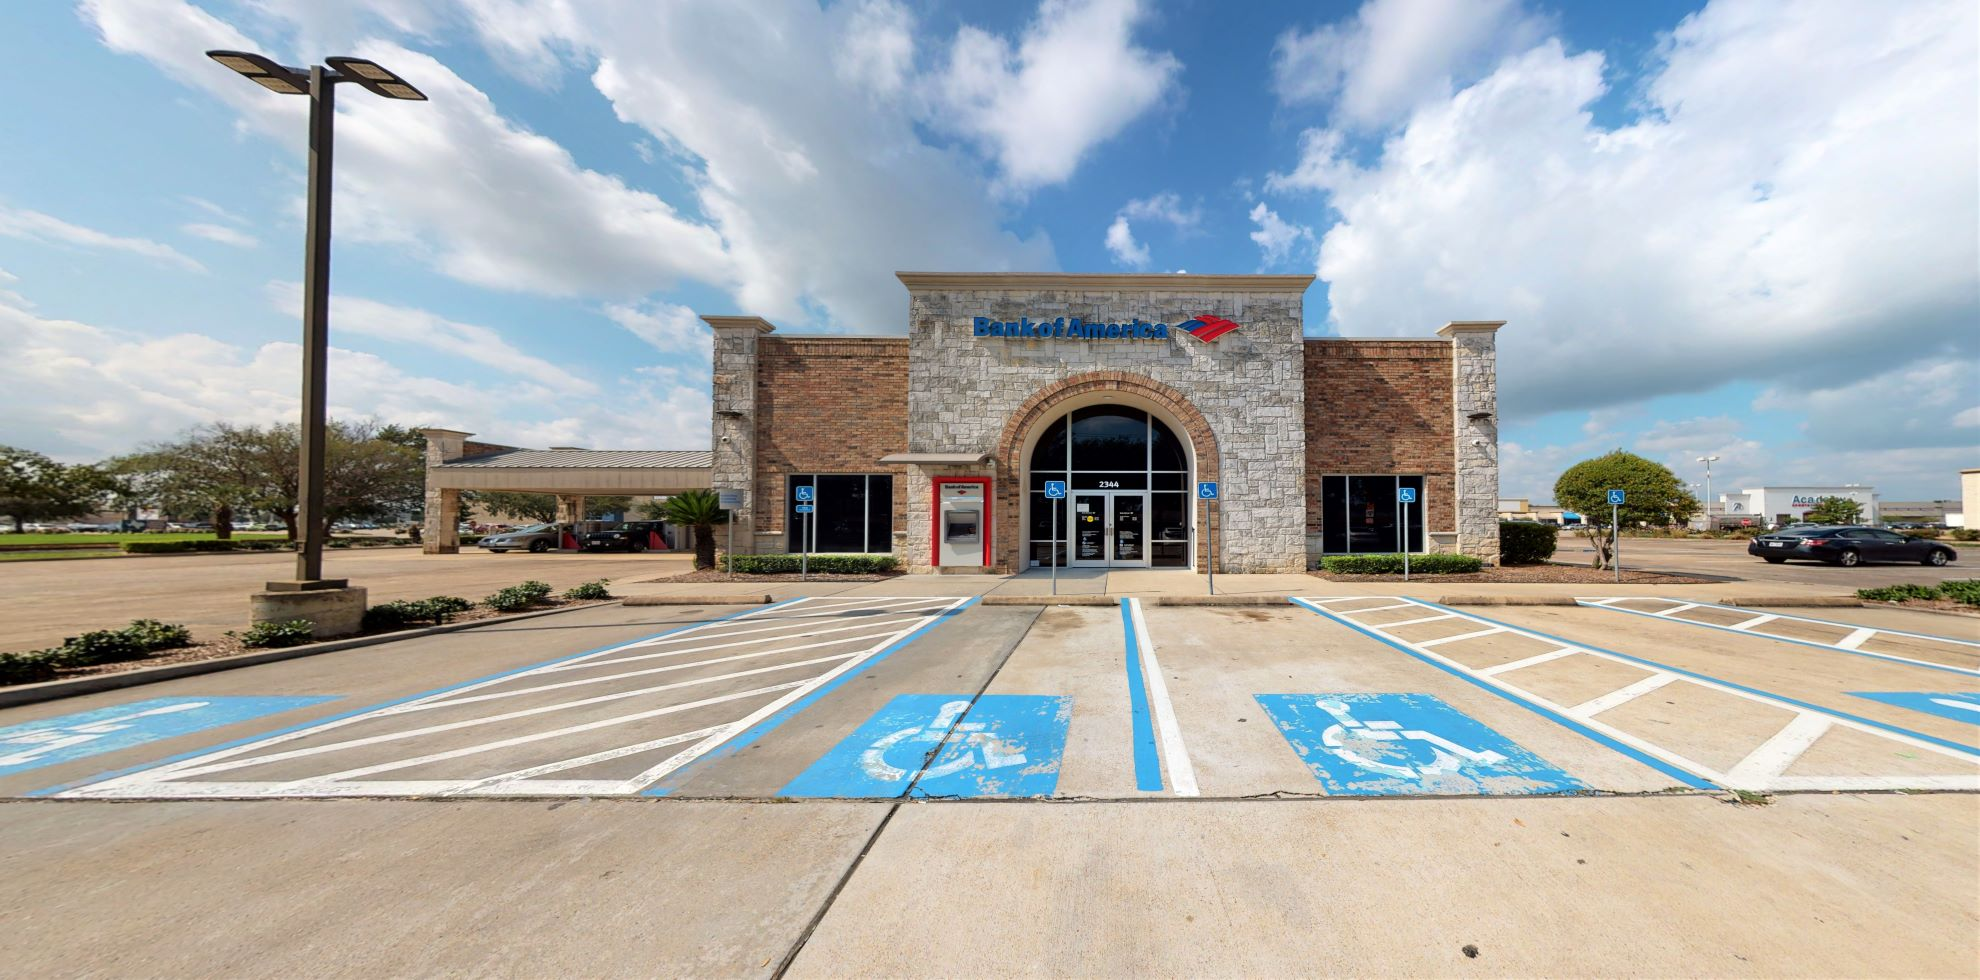 Bank of America financial center with drive-thru ATM | 2344 Highway 6 S, Houston, TX 77077